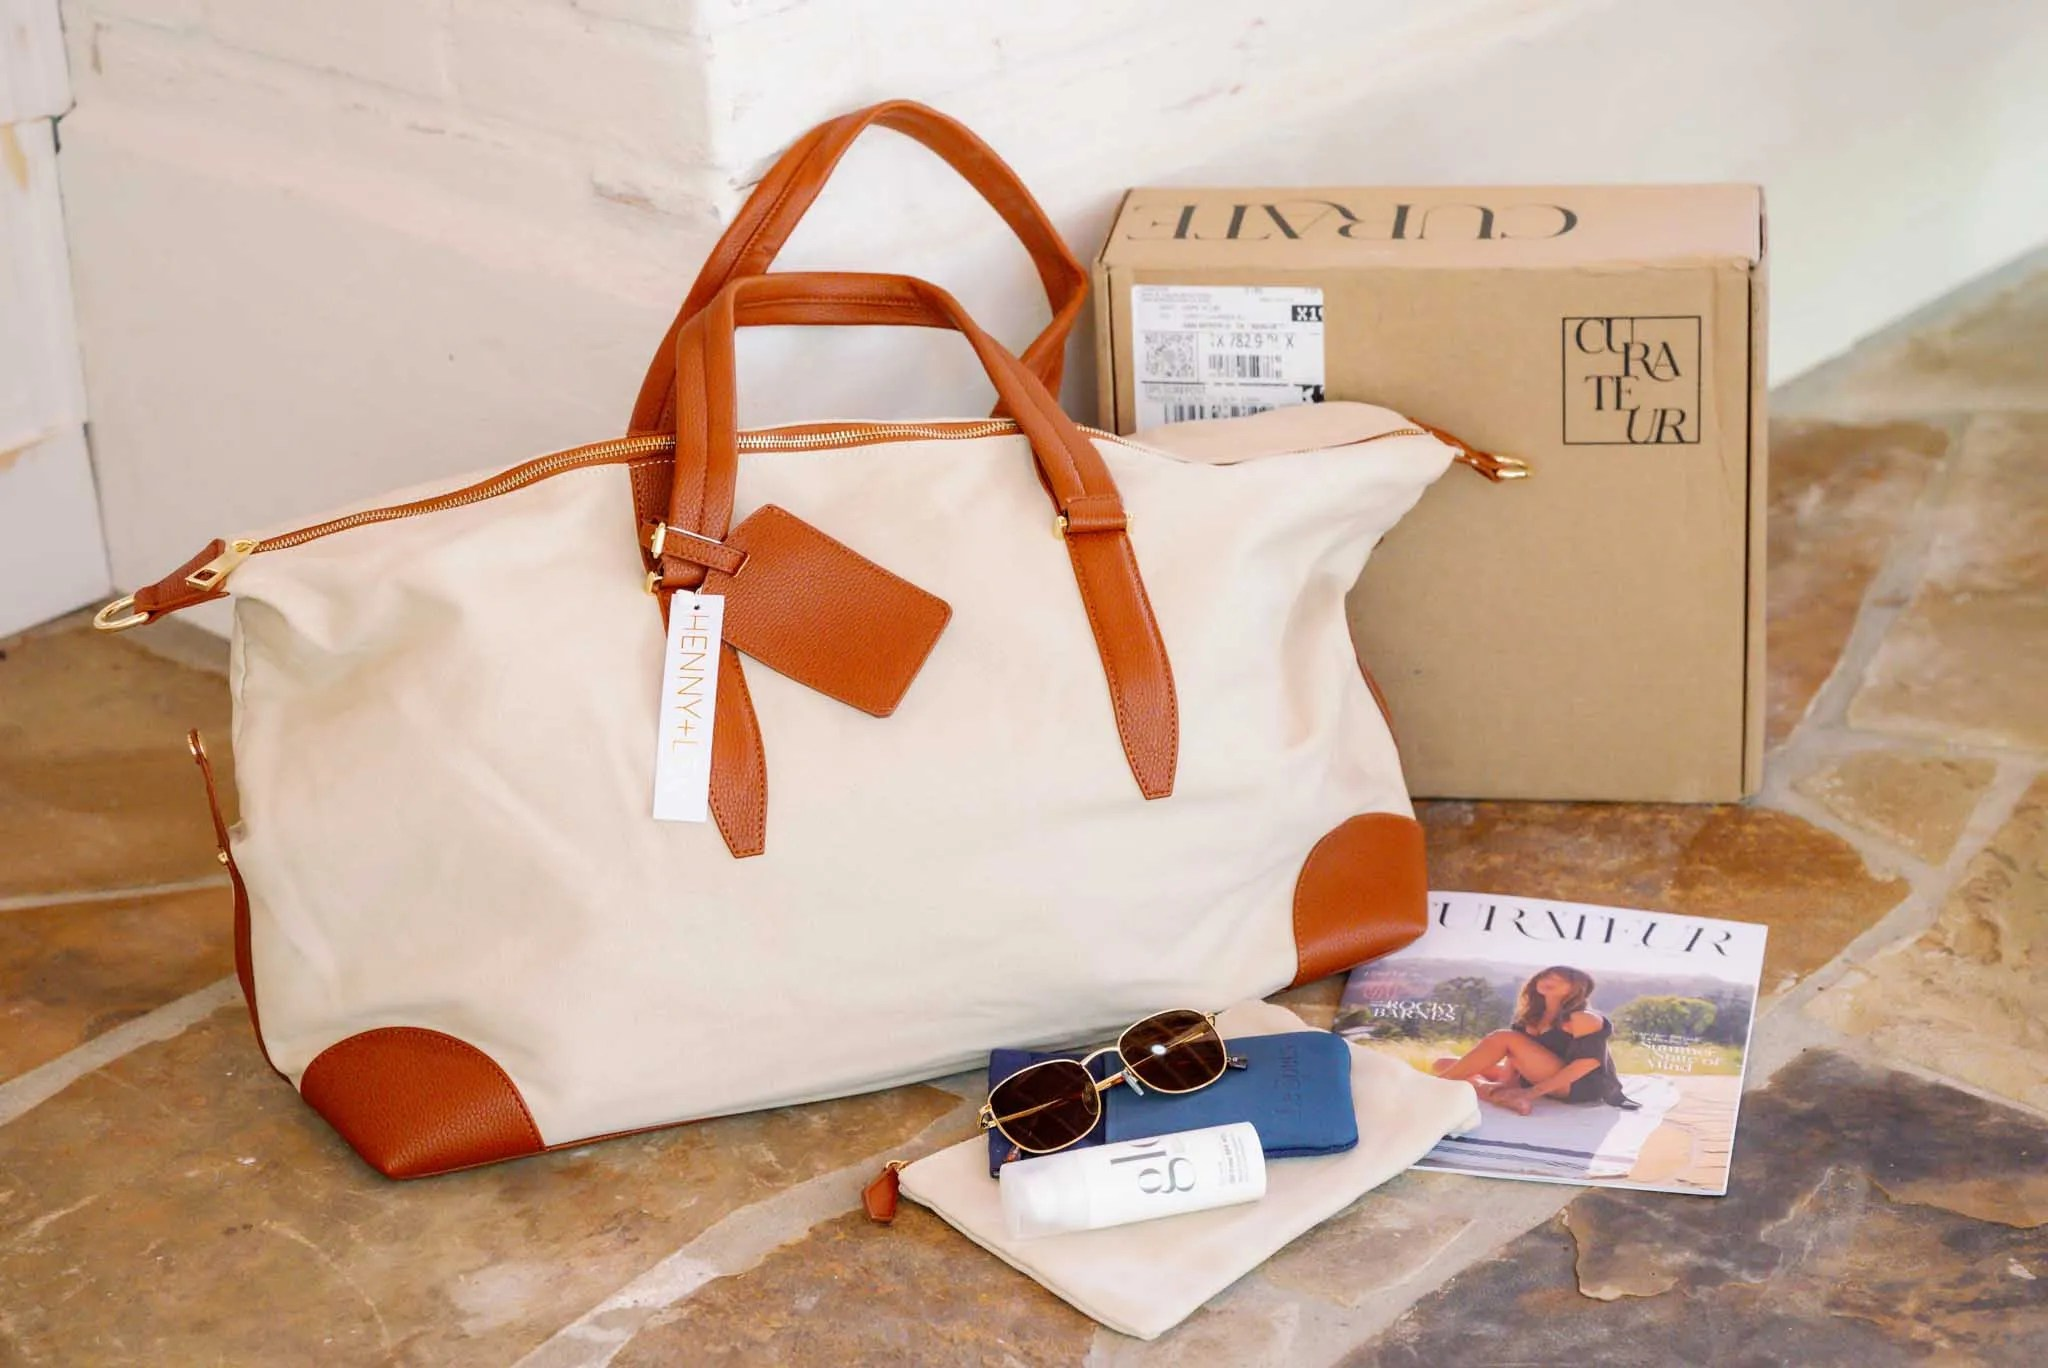 Curateur Summer Welcome Box 2021